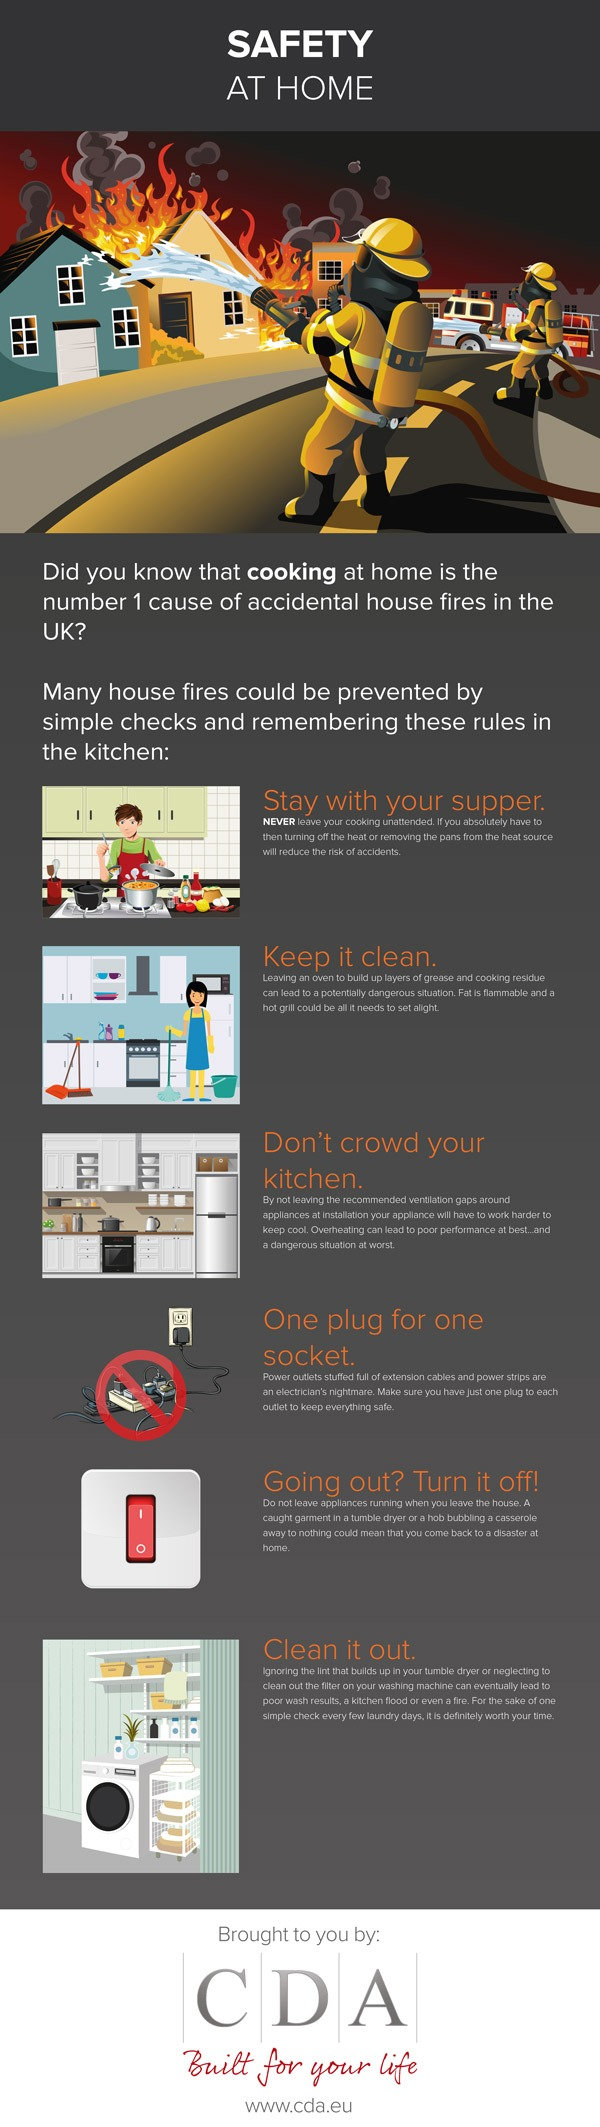 safety-at-home-info-graphics-290916-v1